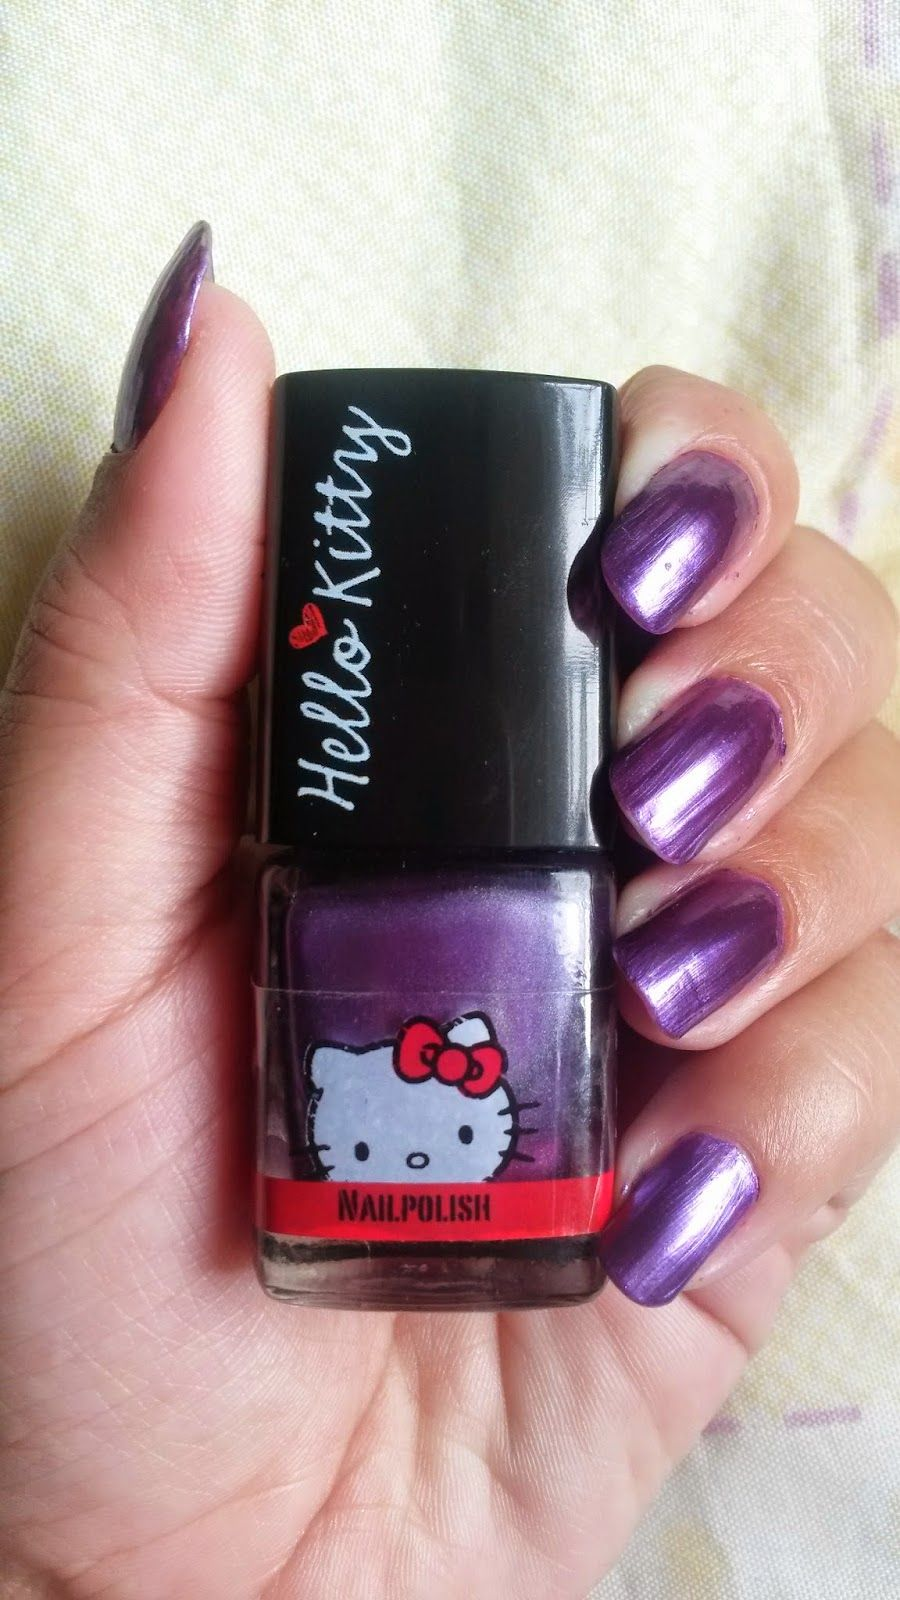 Aradia's blog: Hello Kitty Nail Polish: http://aradia13.blogspot.com/2014/07/hello-kitty-nail-polish.html